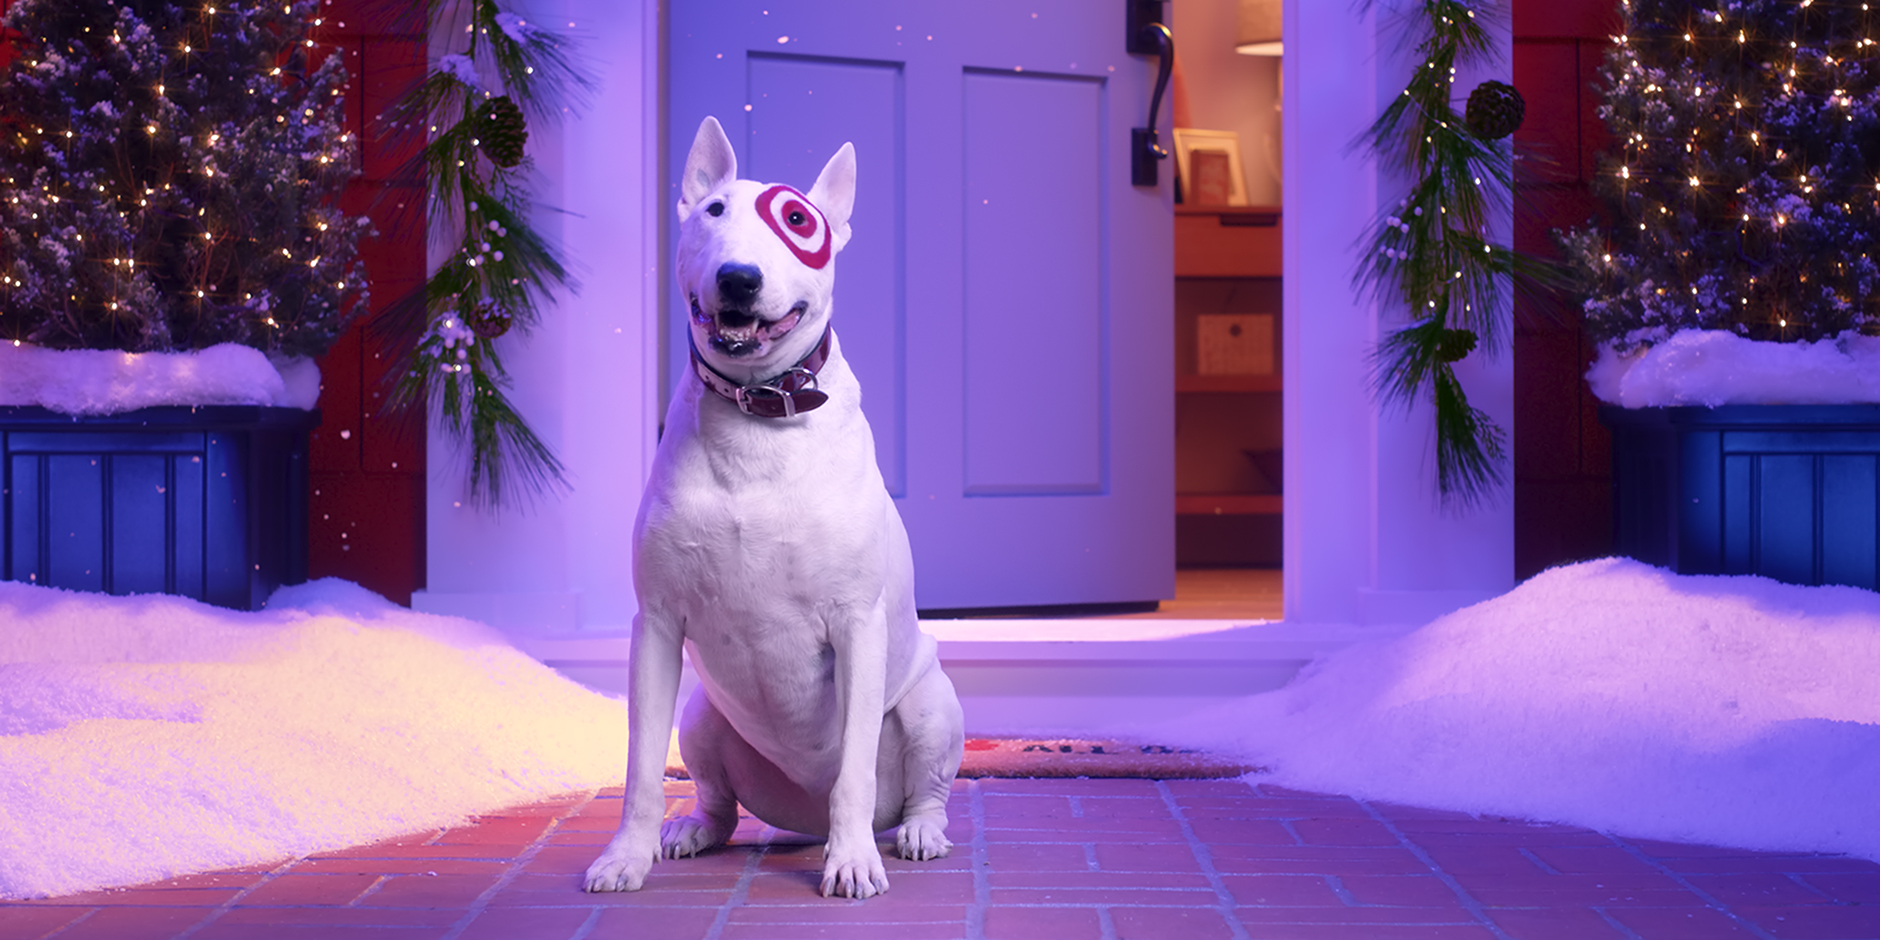 A white bull terrier with a red Bullseye logo over its eye stands in front of a house covered in snow and holiday lights